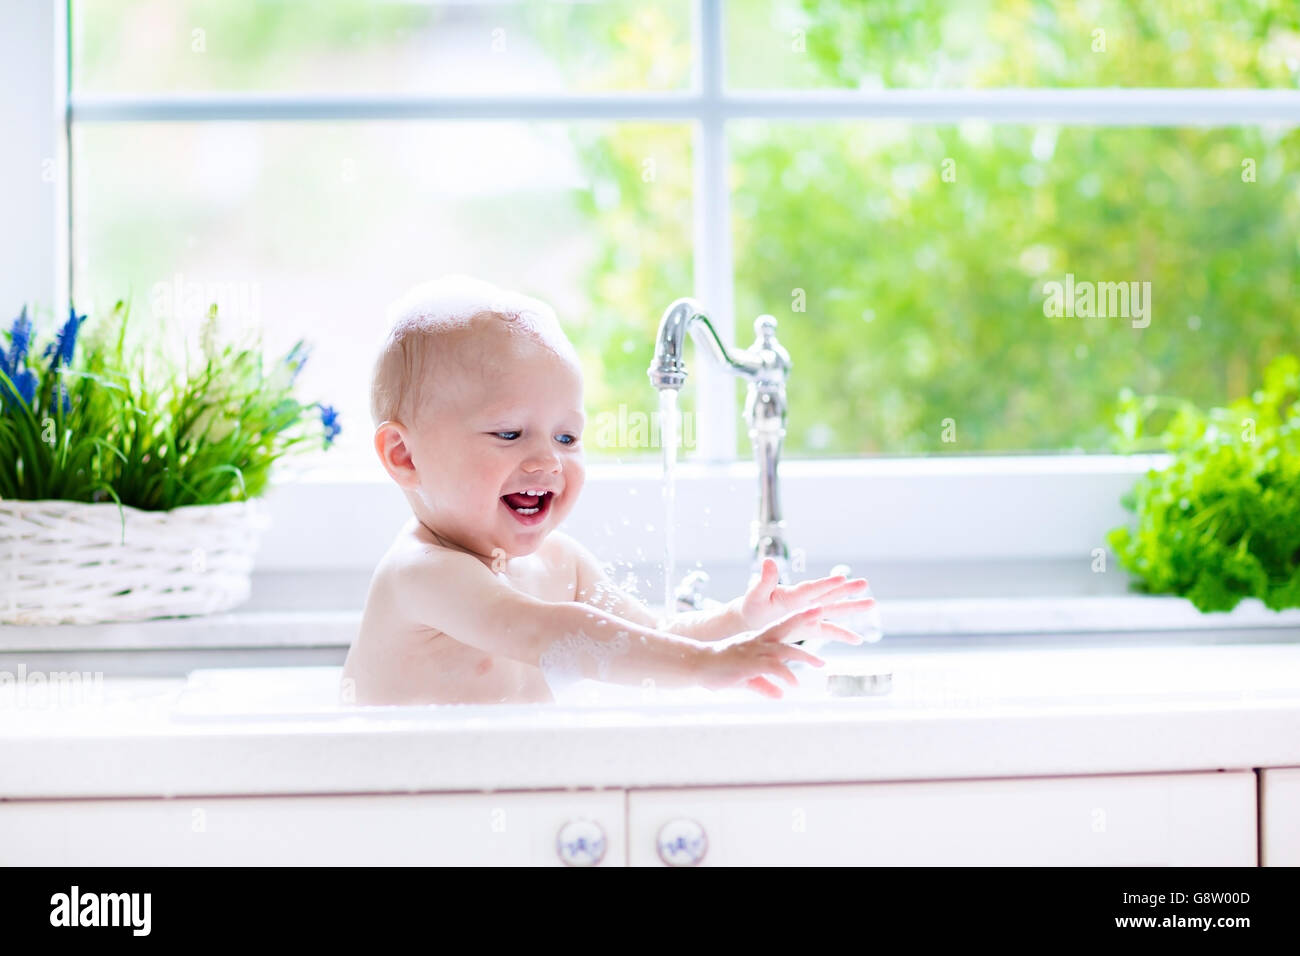 Baby Taking Bath In Kitchen Sink Child Playing With Foam